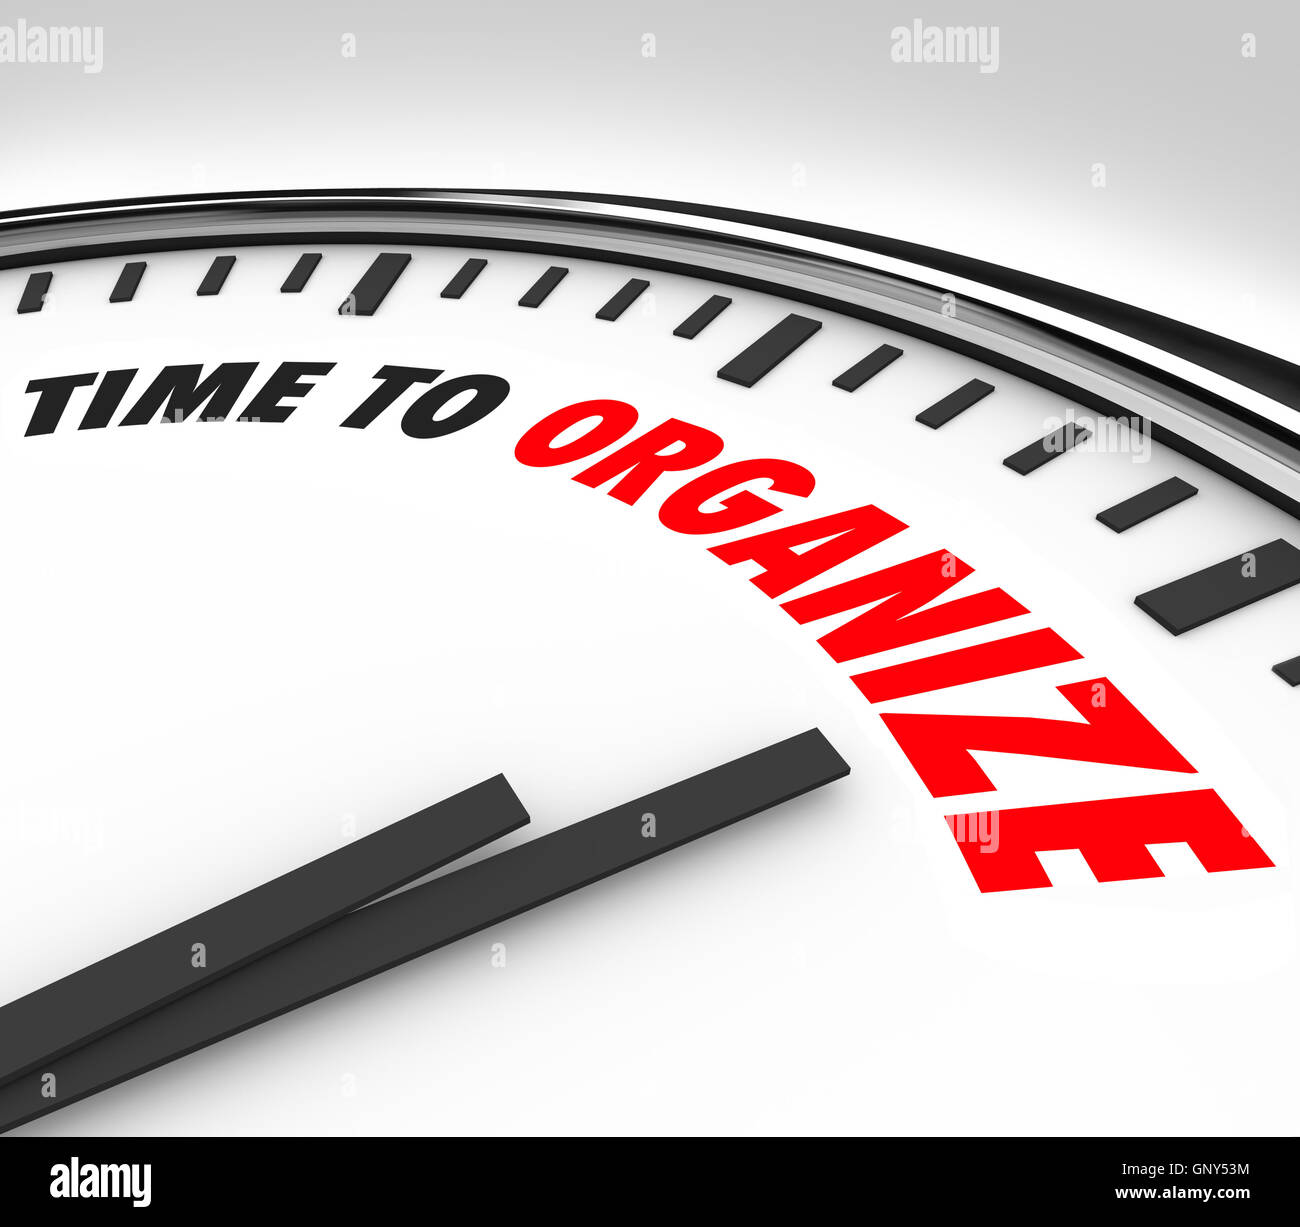 Time to Organize Clock Now is Moment to Coordinate Order - Stock Image